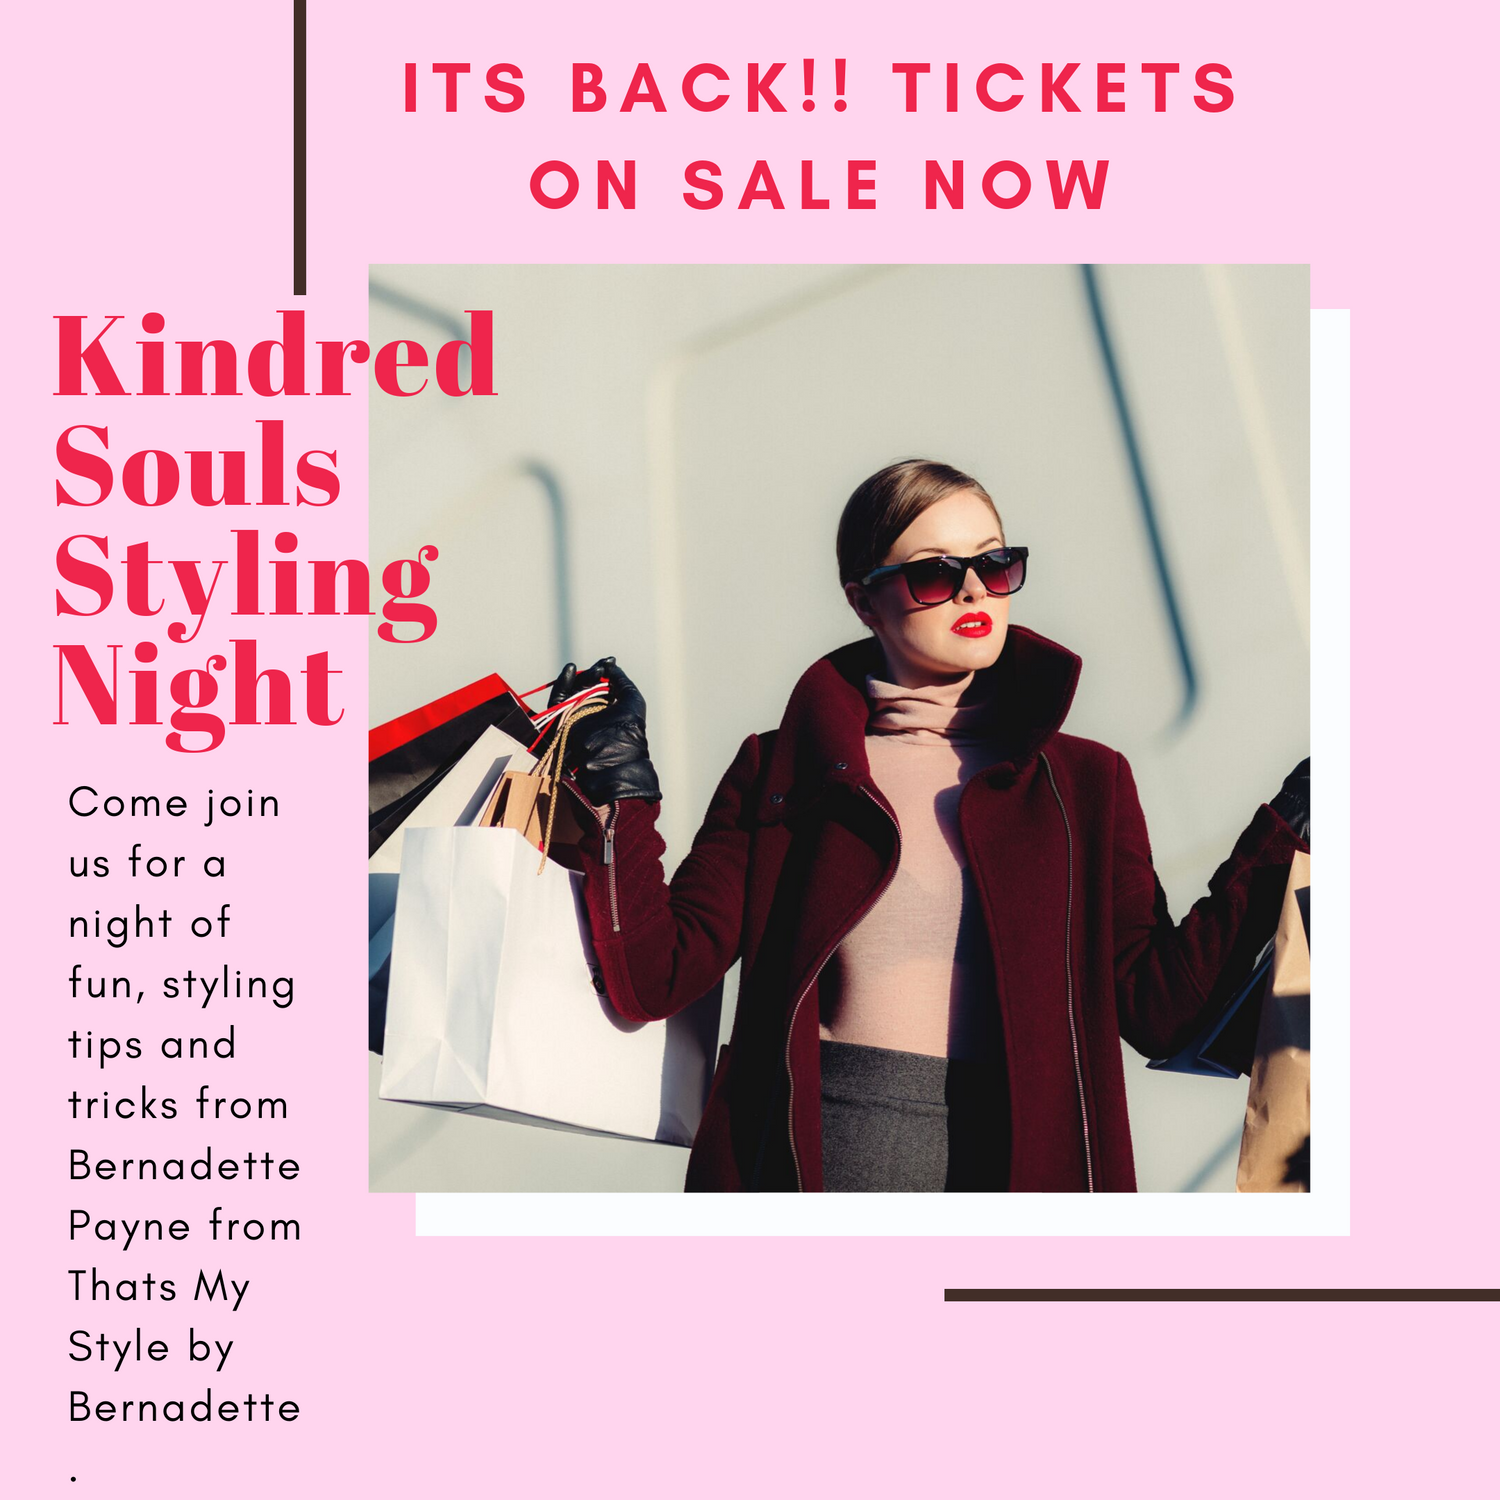 Kindred Souls Styling Night